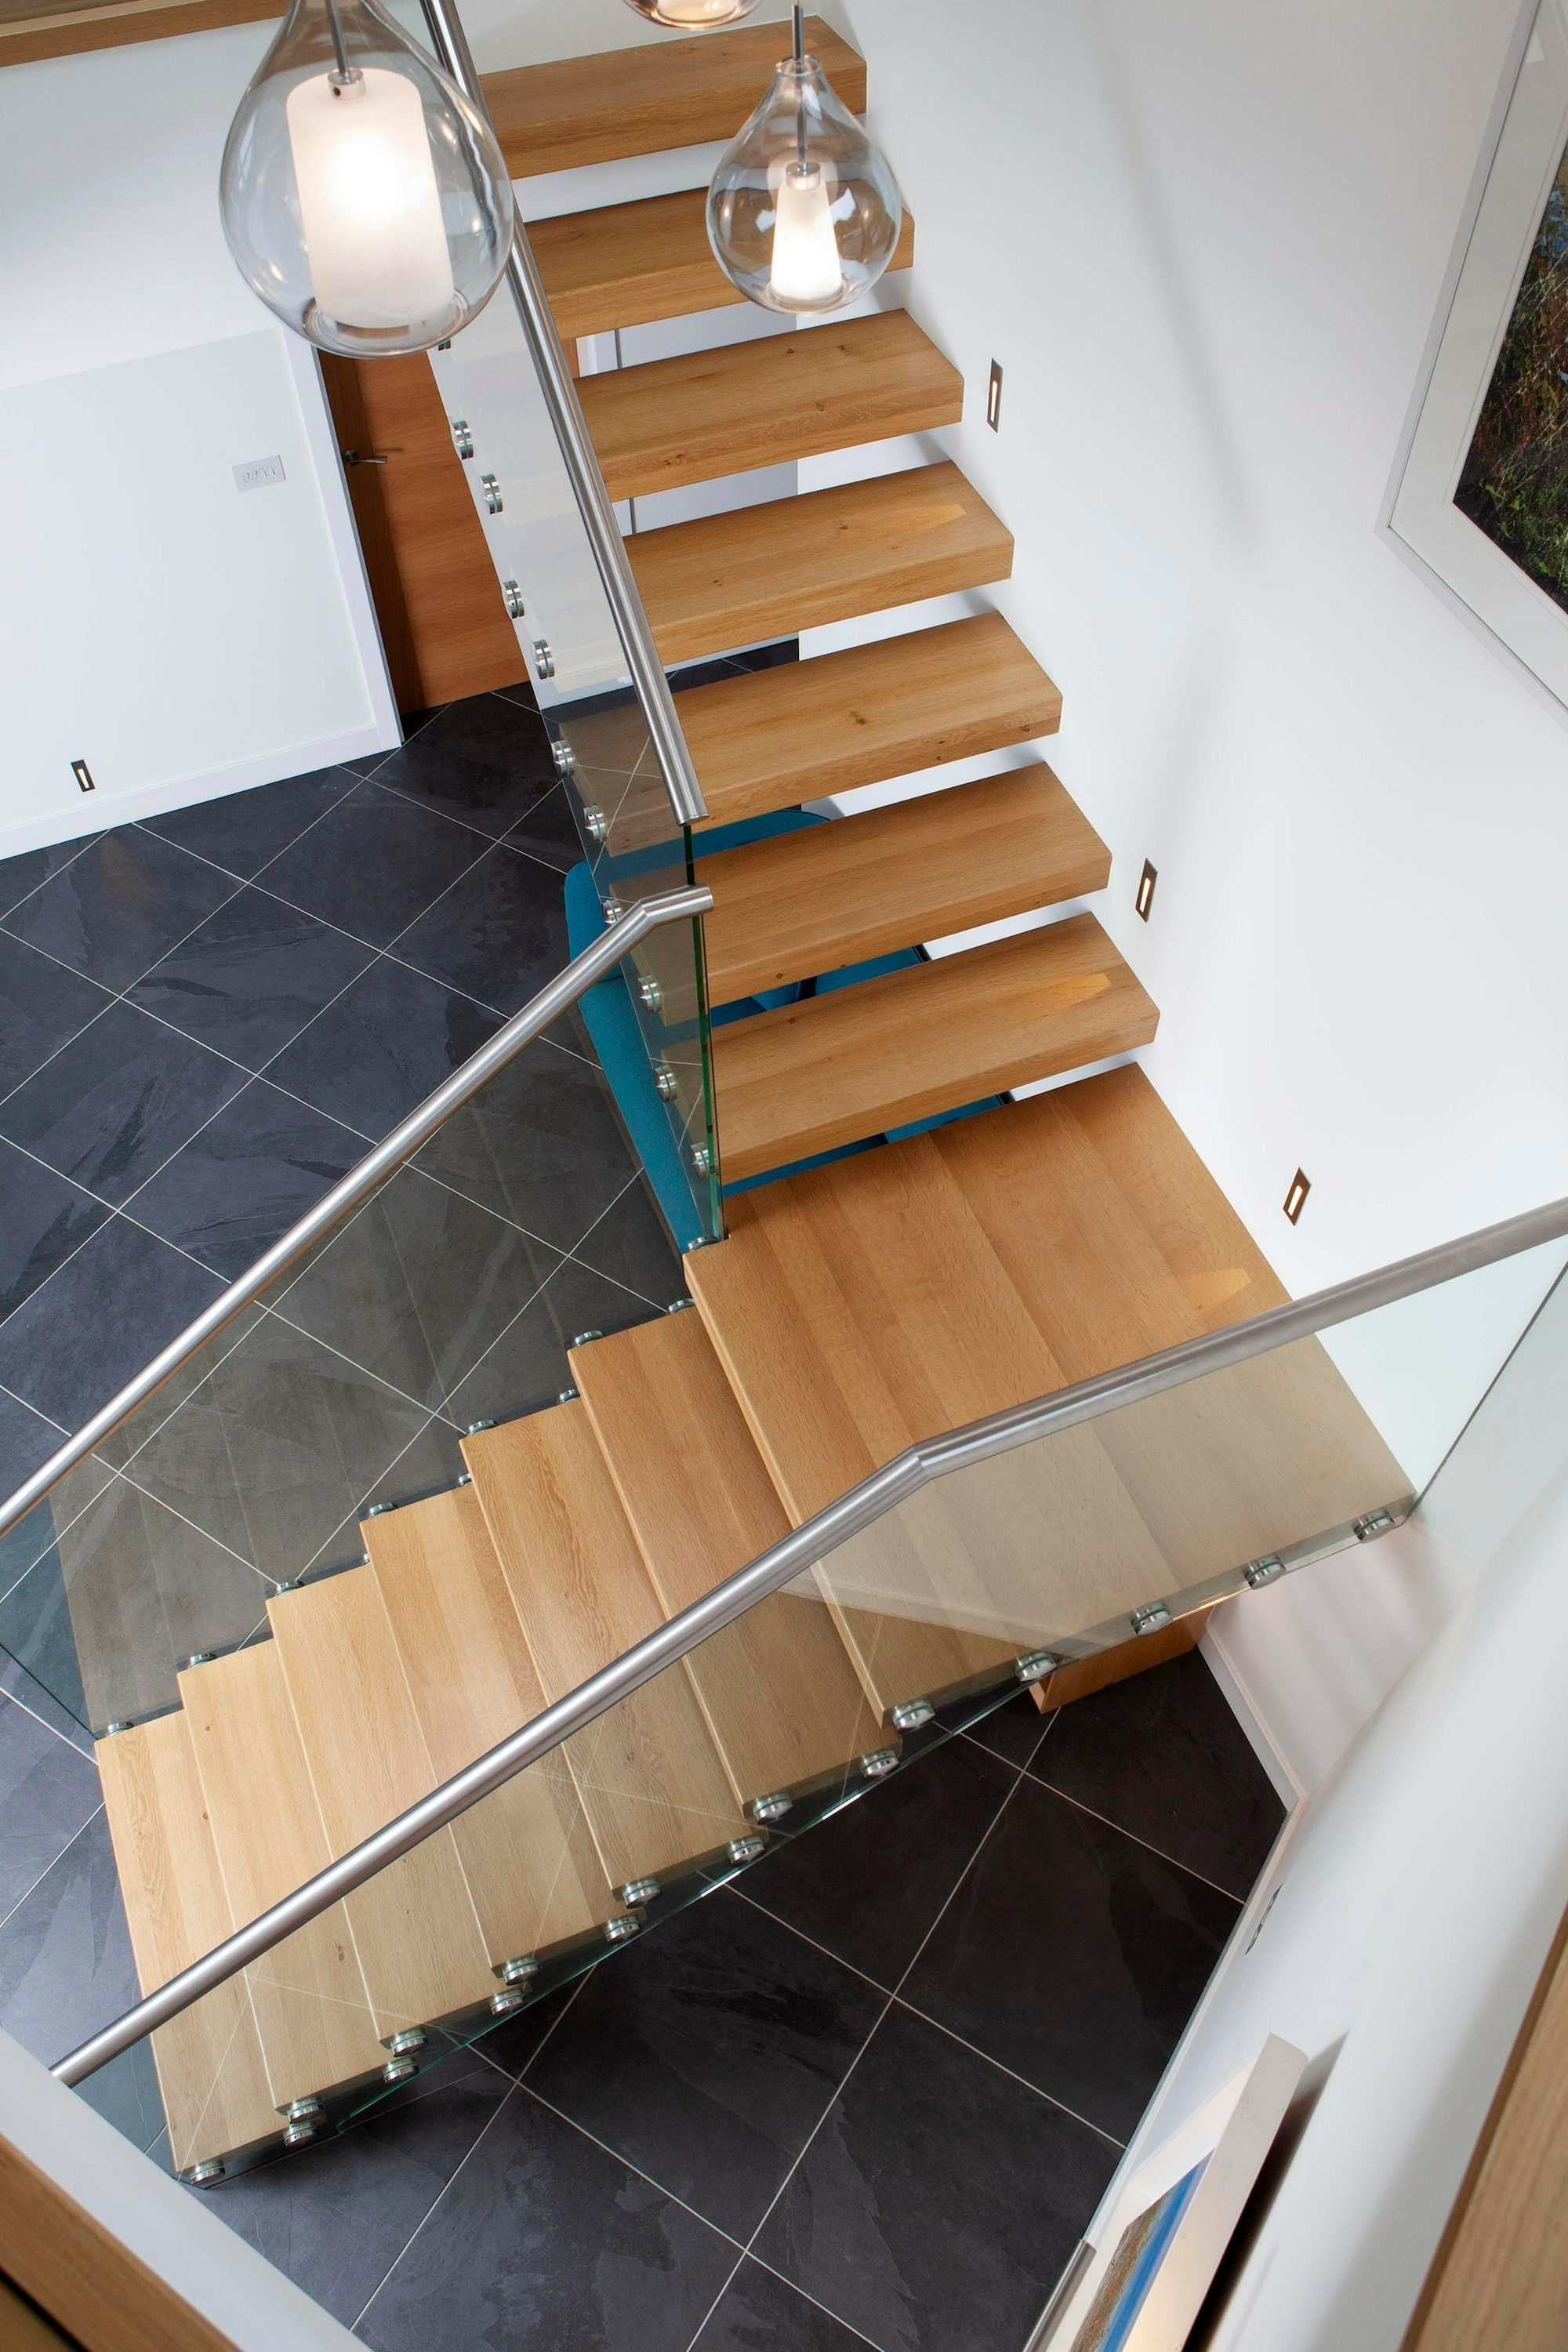 Looking down on timber tread cantilever stair